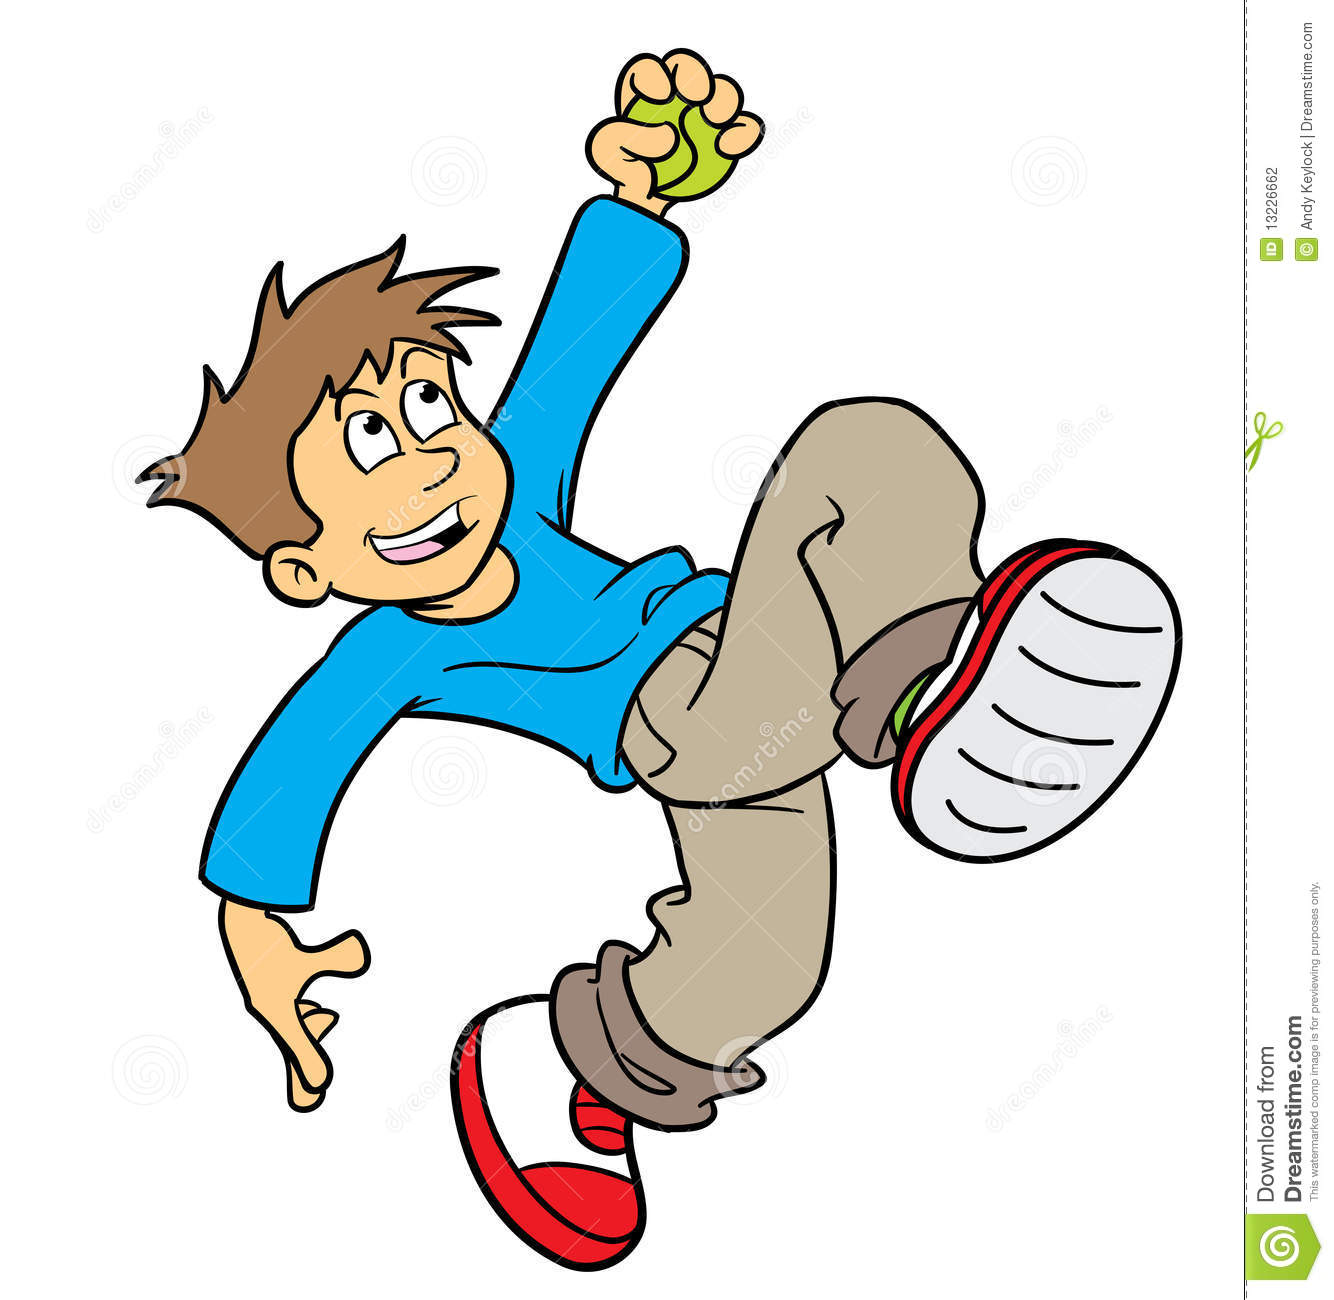 Steward Not Stewie besides Image Libre De Droits Fille Du Football Image27653916 also Stock Photography Childrens Play Image9771762 furthermore 1358730 as well Running. on boy running drawing